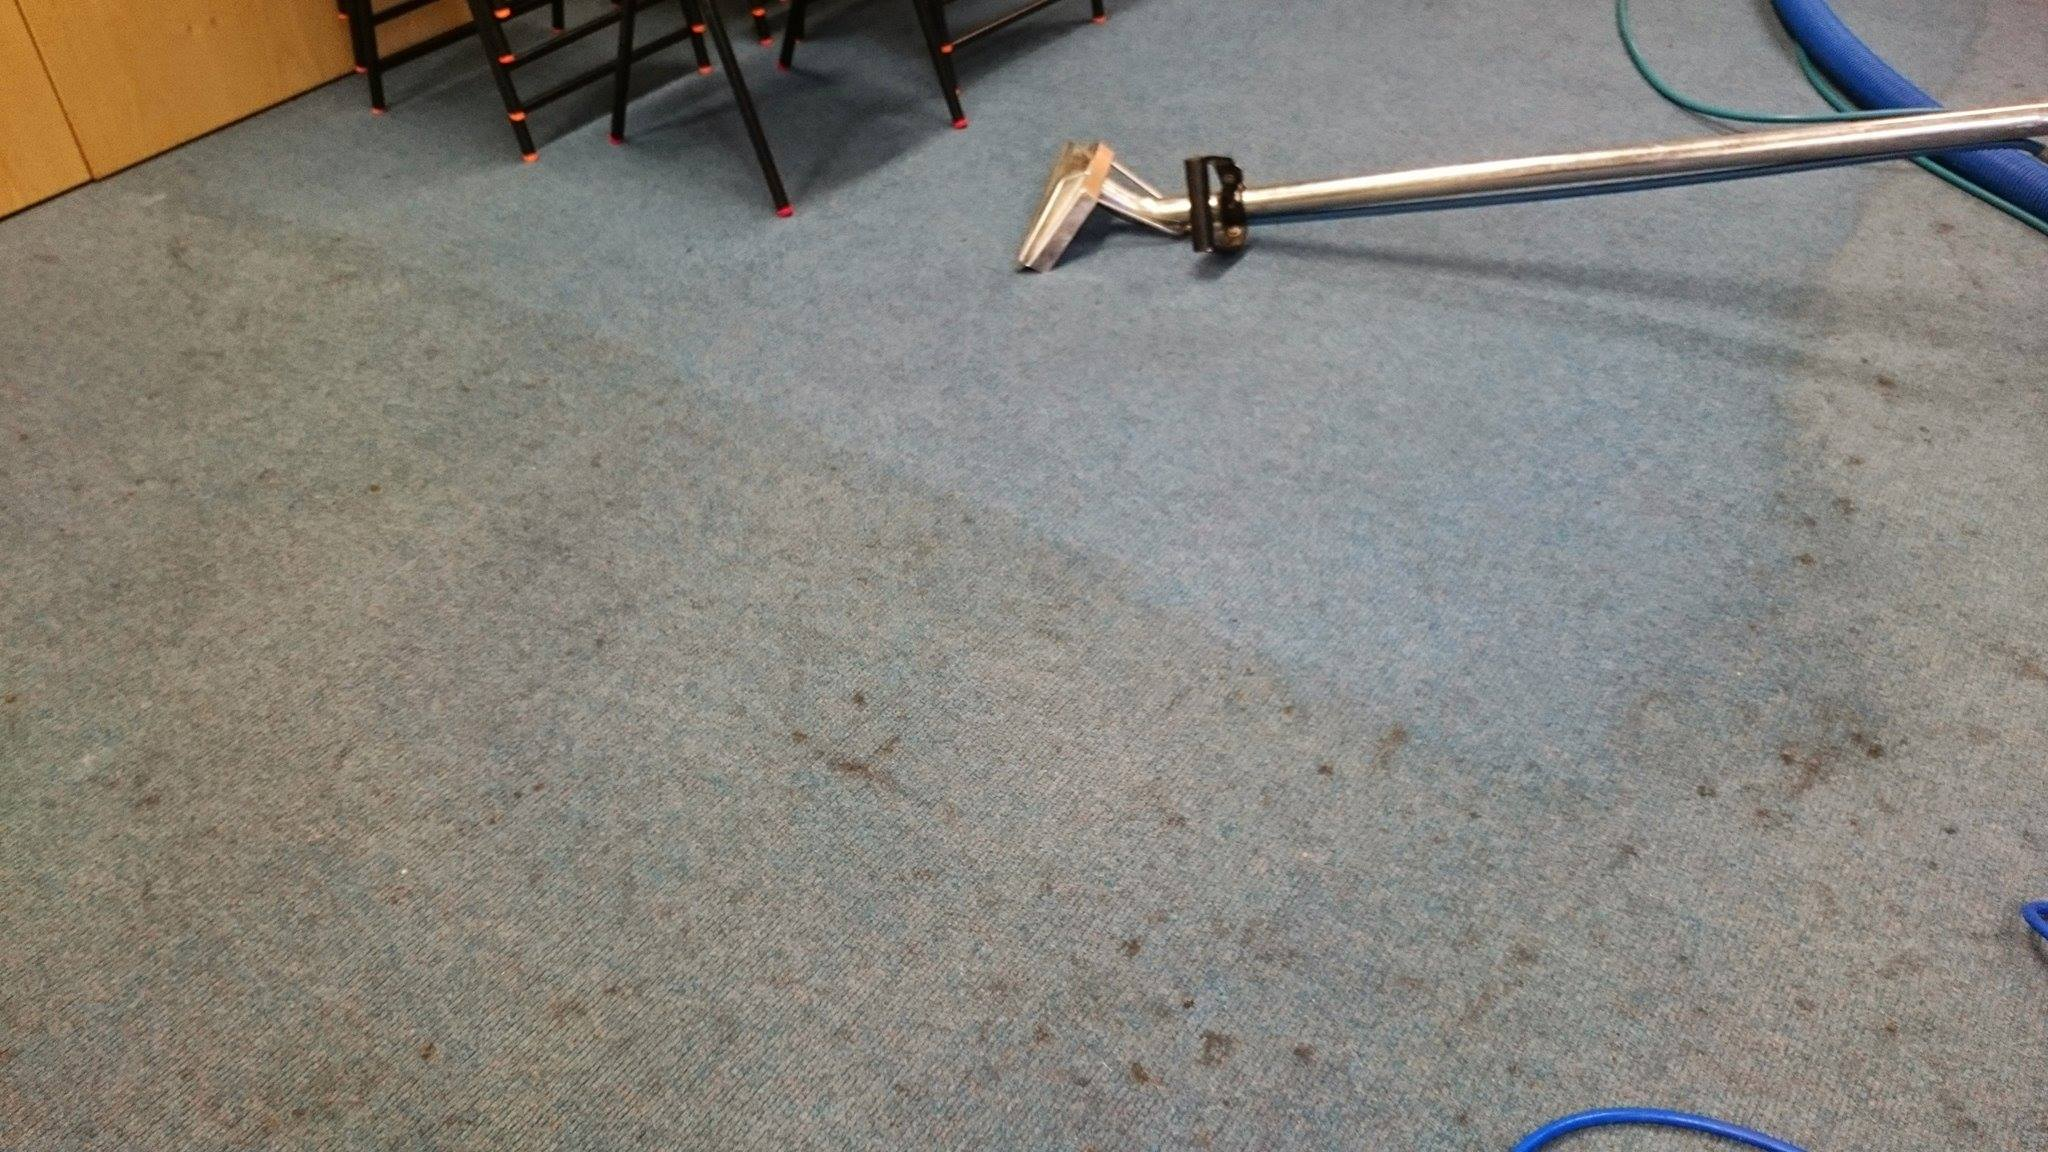 Carpet cleaning at a local school